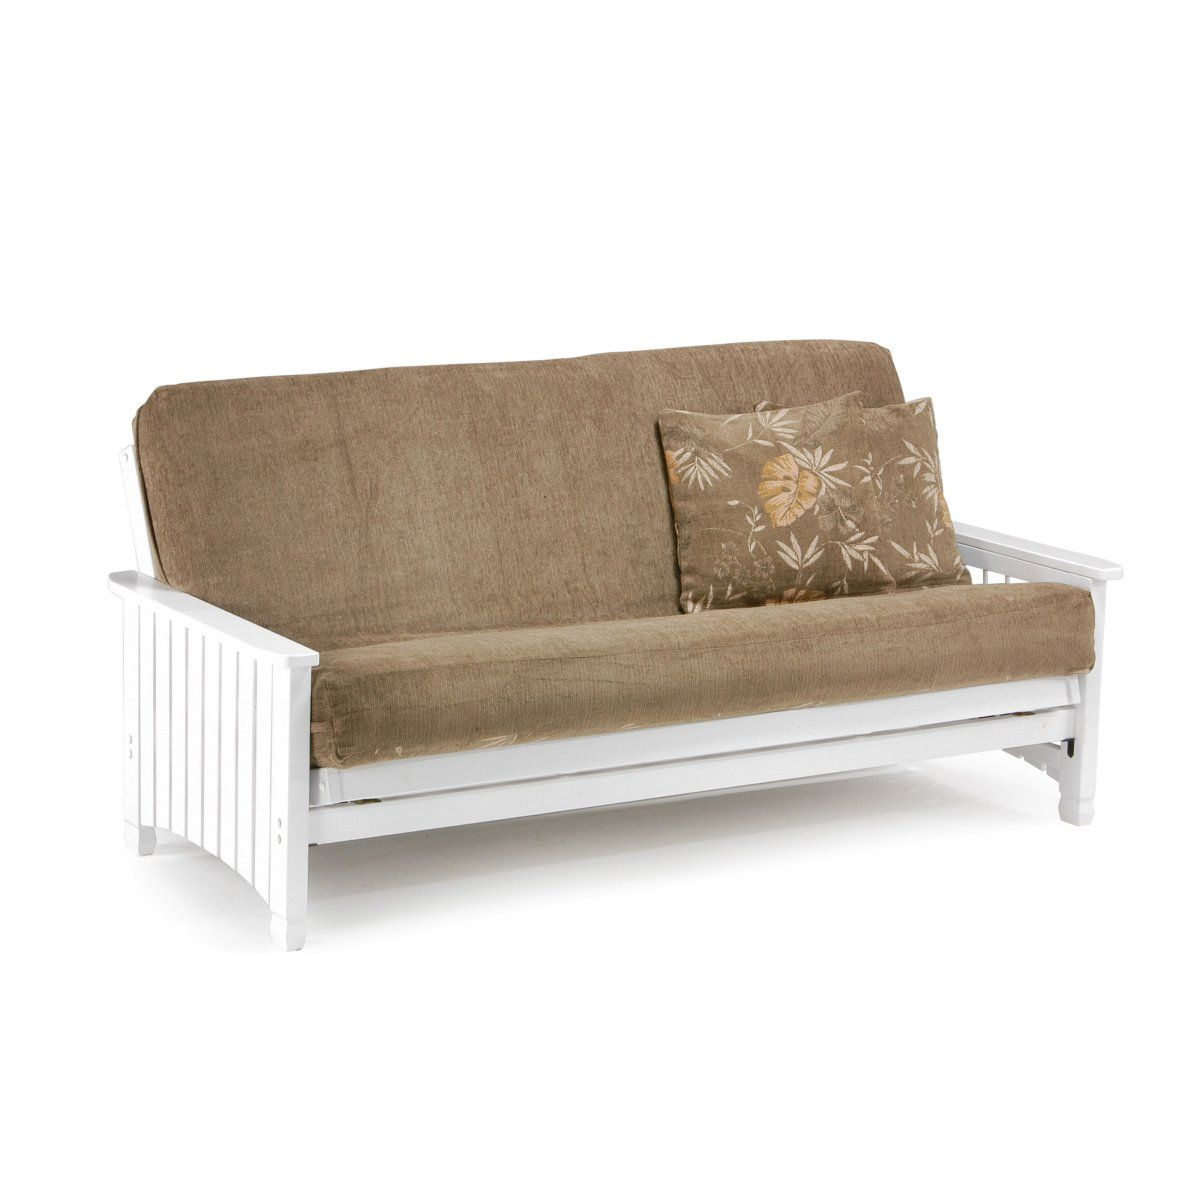 key west white futon frame  436 key west white futon frame  436   ideas for the cottage      rh   pinterest